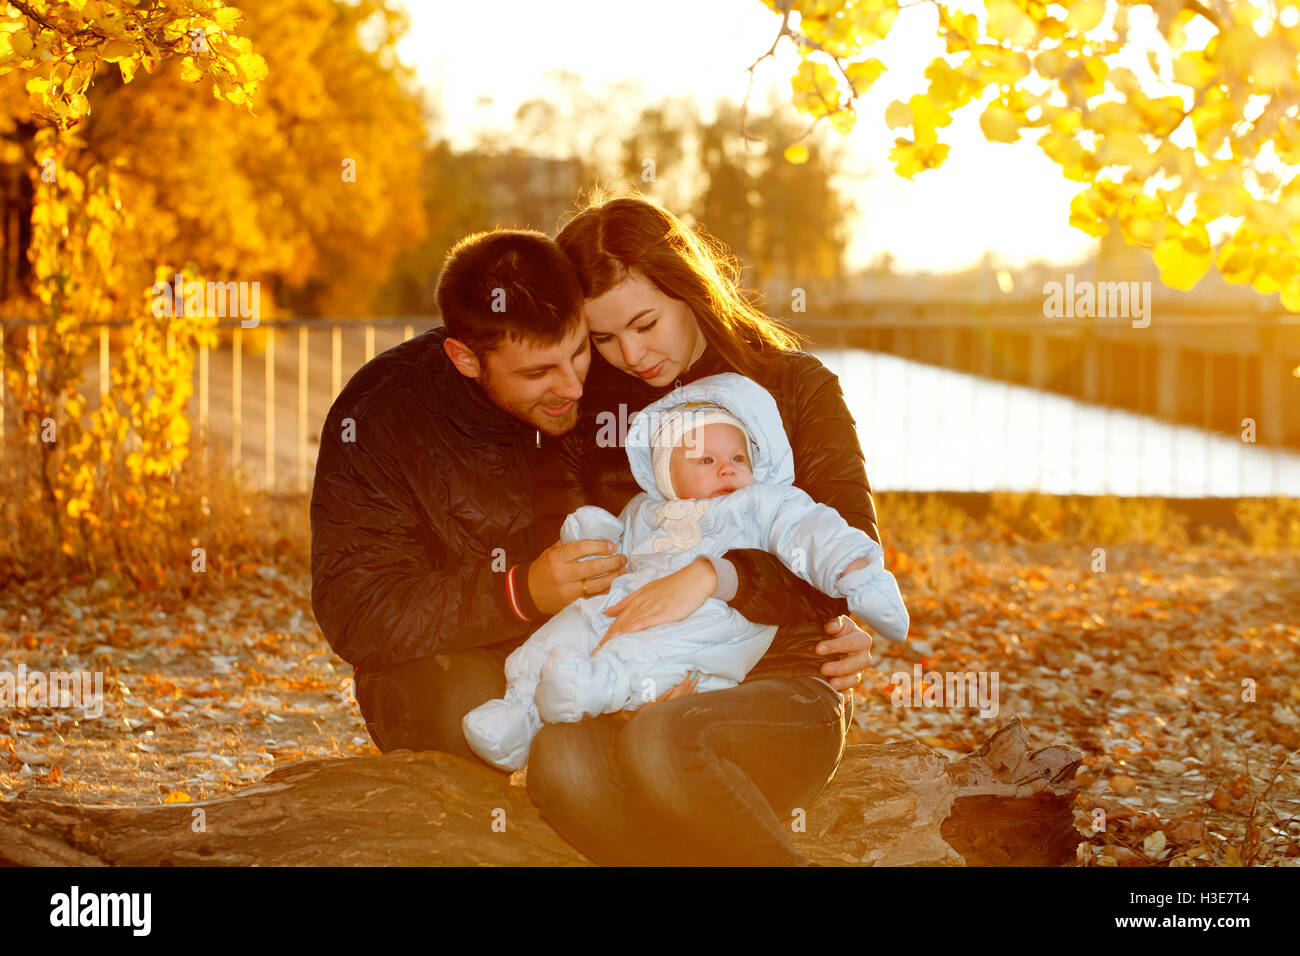 happy family walking outdoors, father, mother and cute baby